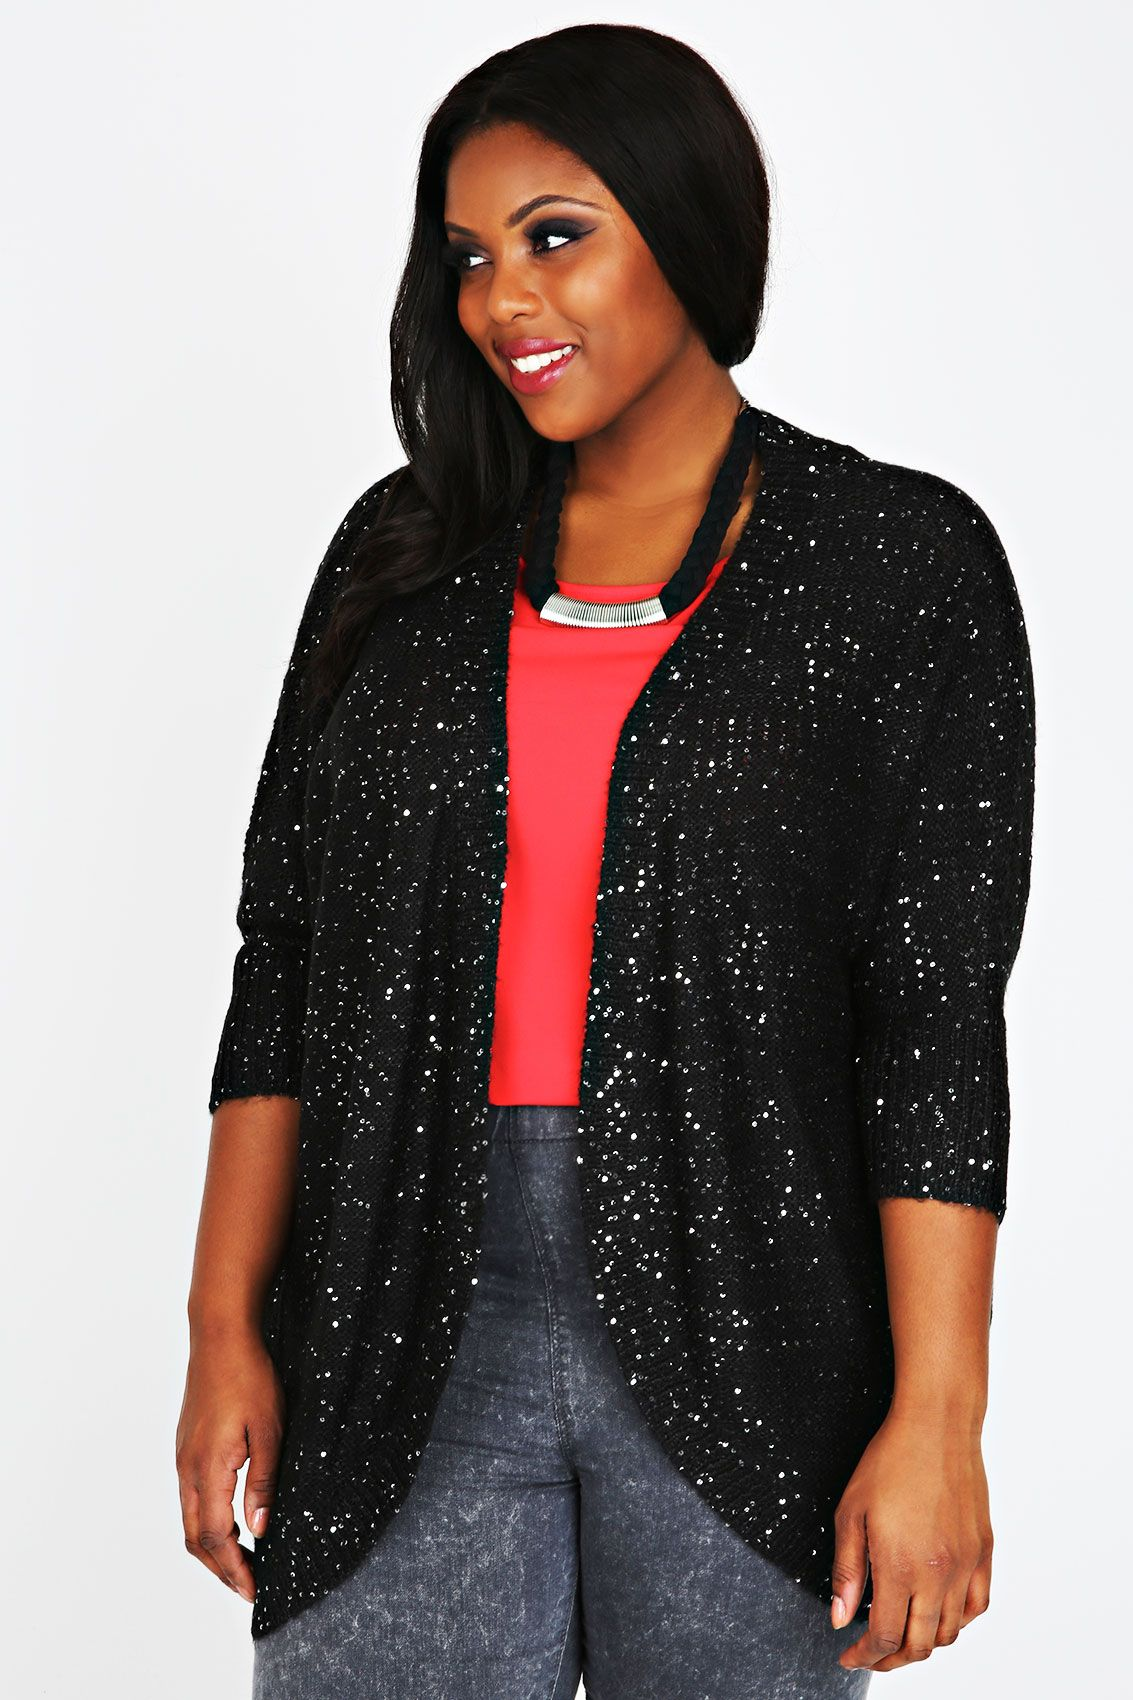 Black Edge To Edge Waterfall Jersey Cardigan | Black sequins ...